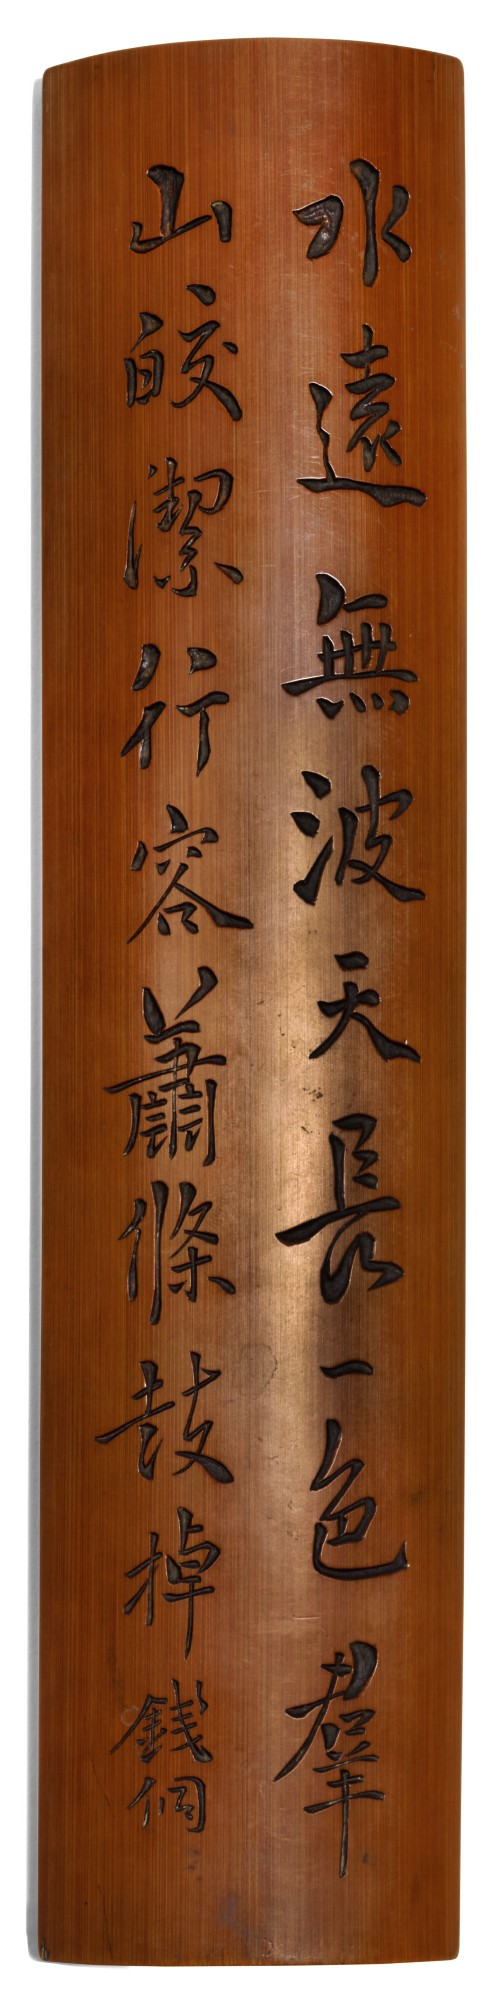 View full screen - View 1 of Lot 291. AN INSCRIBED BAMBOO WRISTREST QING DYNASTY, CIRCA 1800 | 清 約1800年 竹刻詩臂擱.